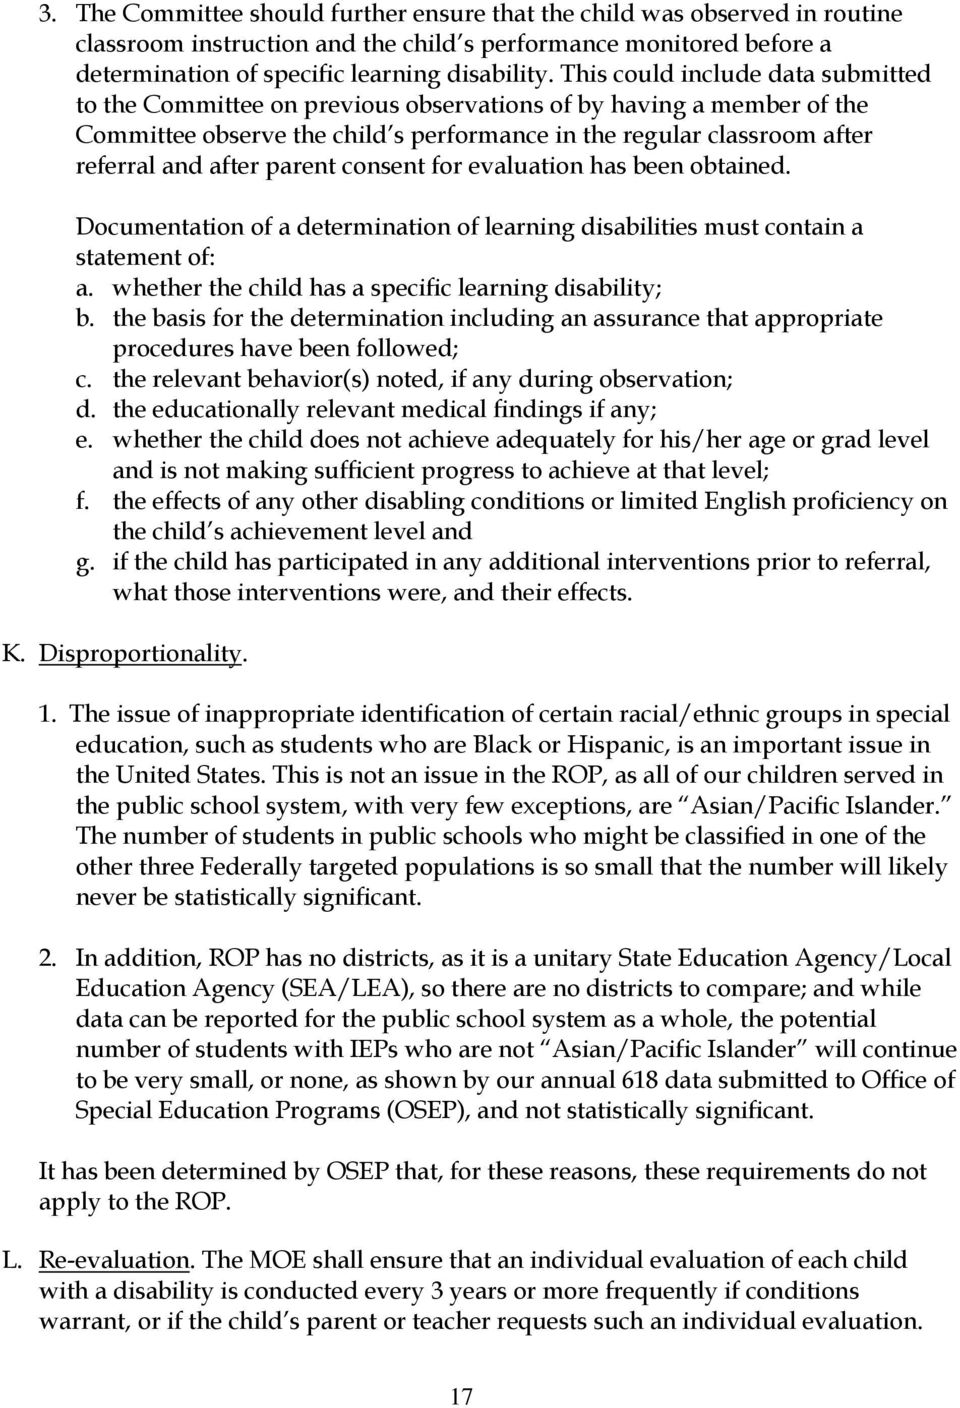 parent consent for evaluation has been obtained. Documentation of a determination of learning disabilities must contain a statement of: a. whether the child has a specific learning disability; b.